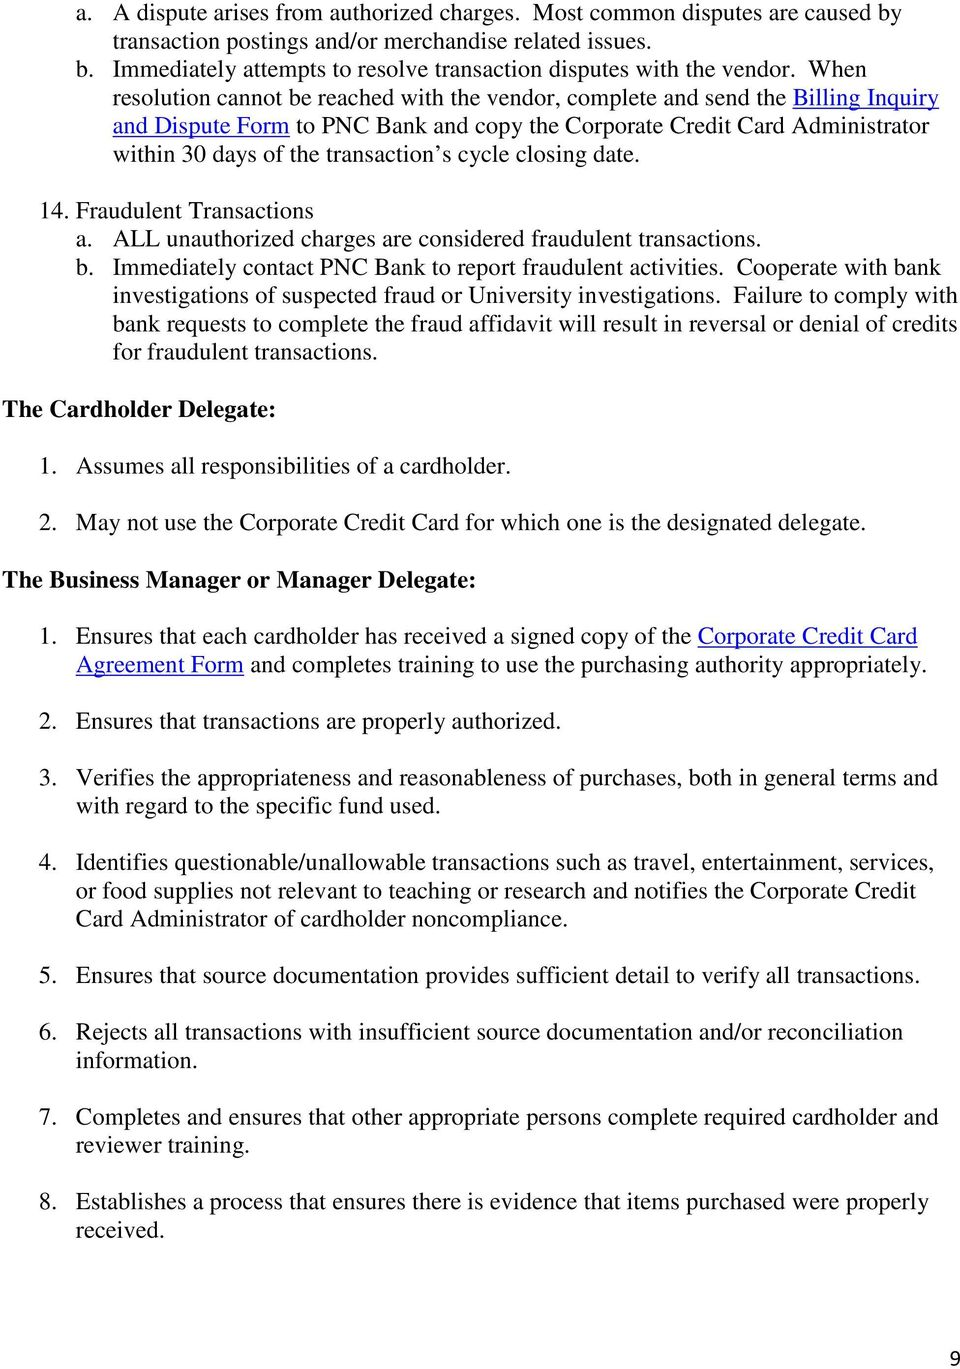 University Policy Corporate Credit Card Policy And Procedures Pdf